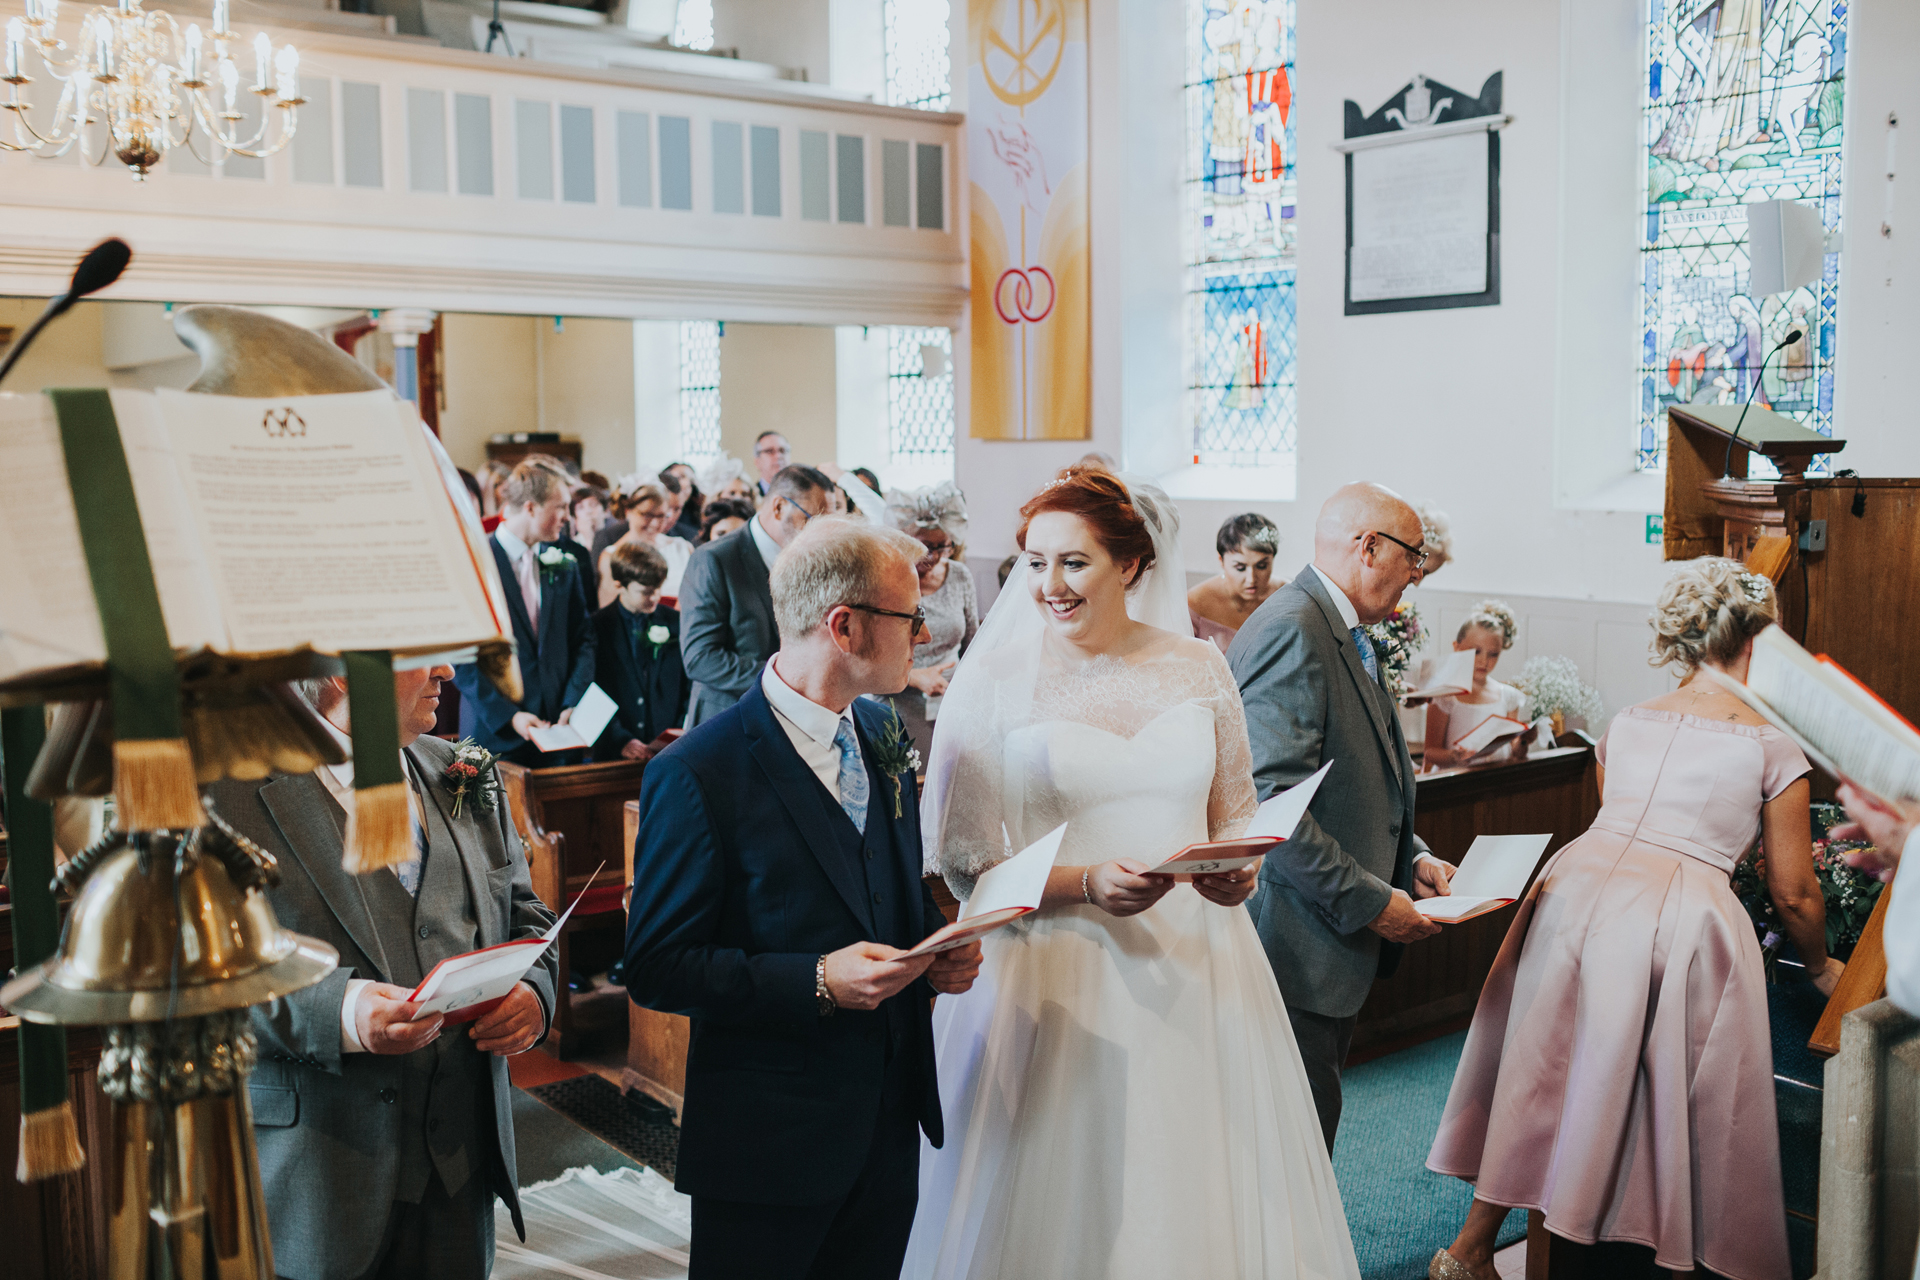 Bride and groom look at each other smiling over their hymn sheets.